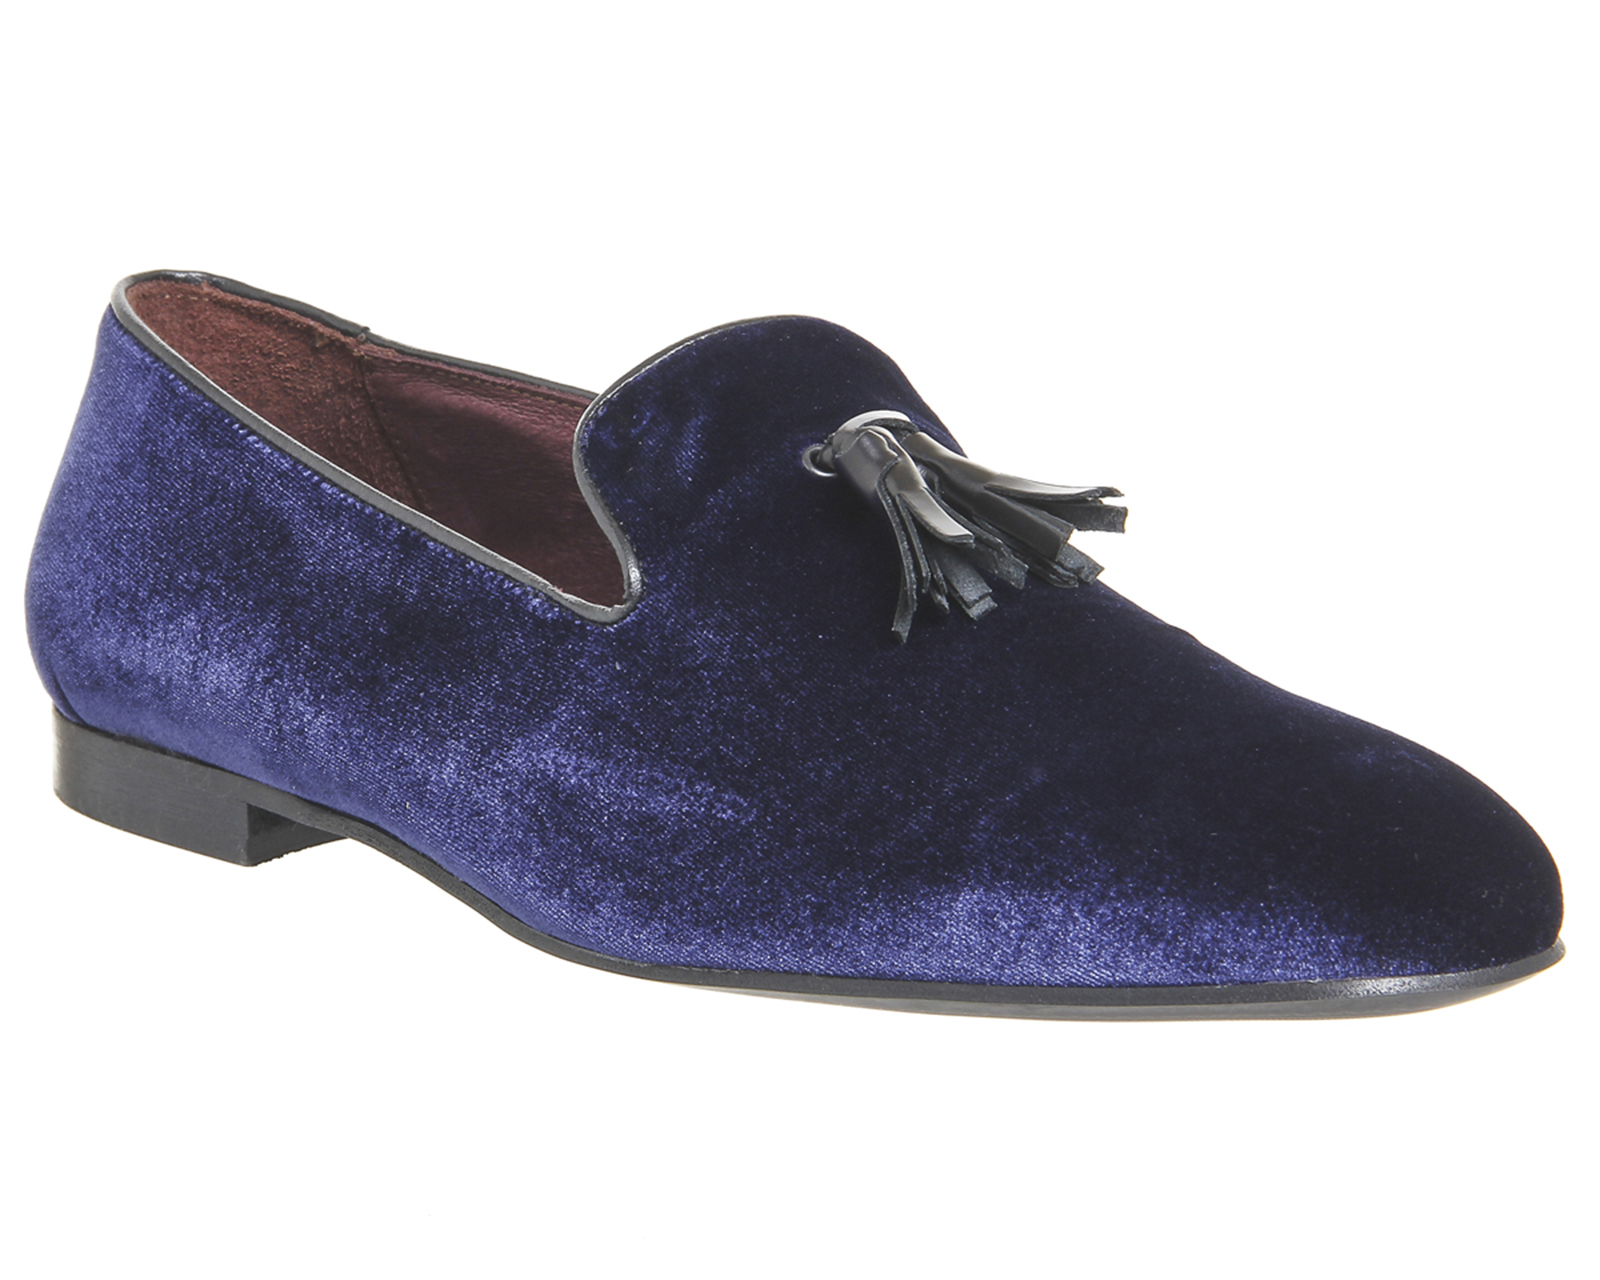 mens poste aristocrat loafers navy velvet formal shoes ebay